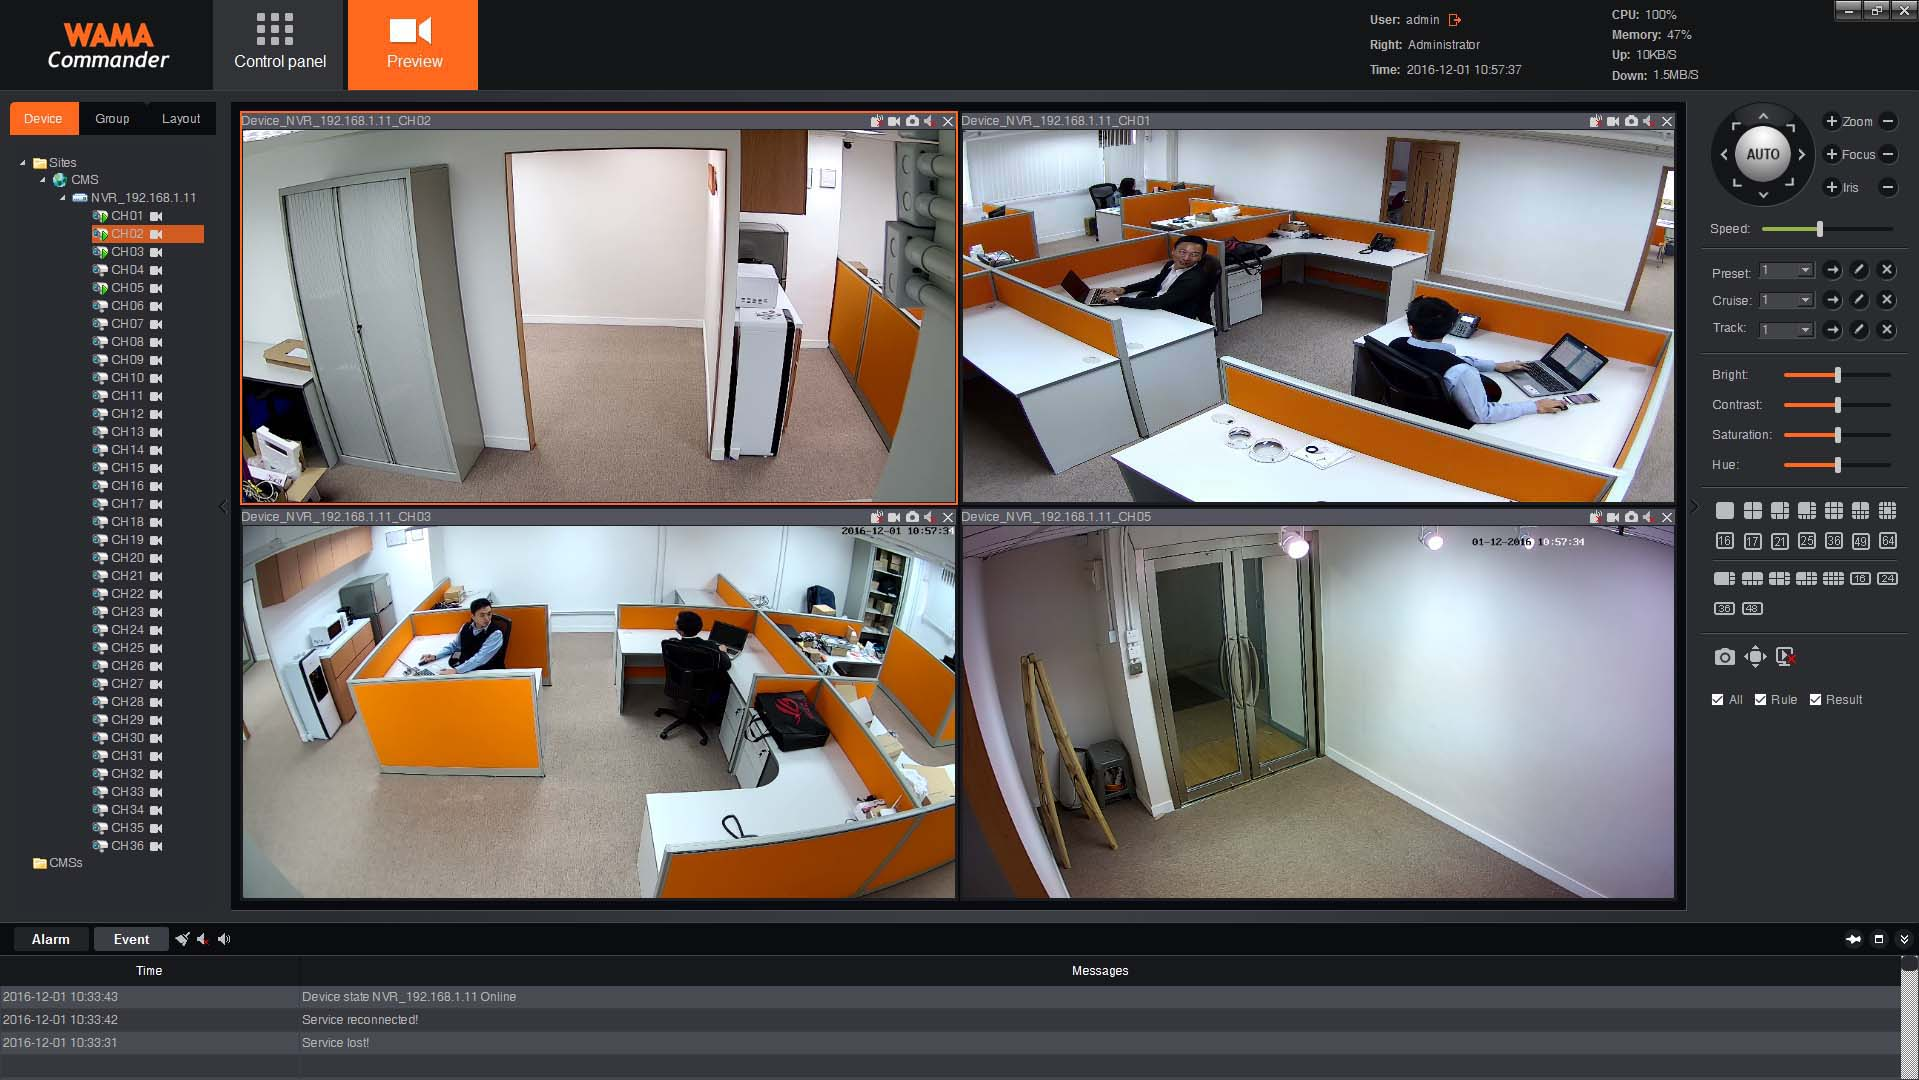 wama commander wama technology cctv video surveillance wama commander video management software